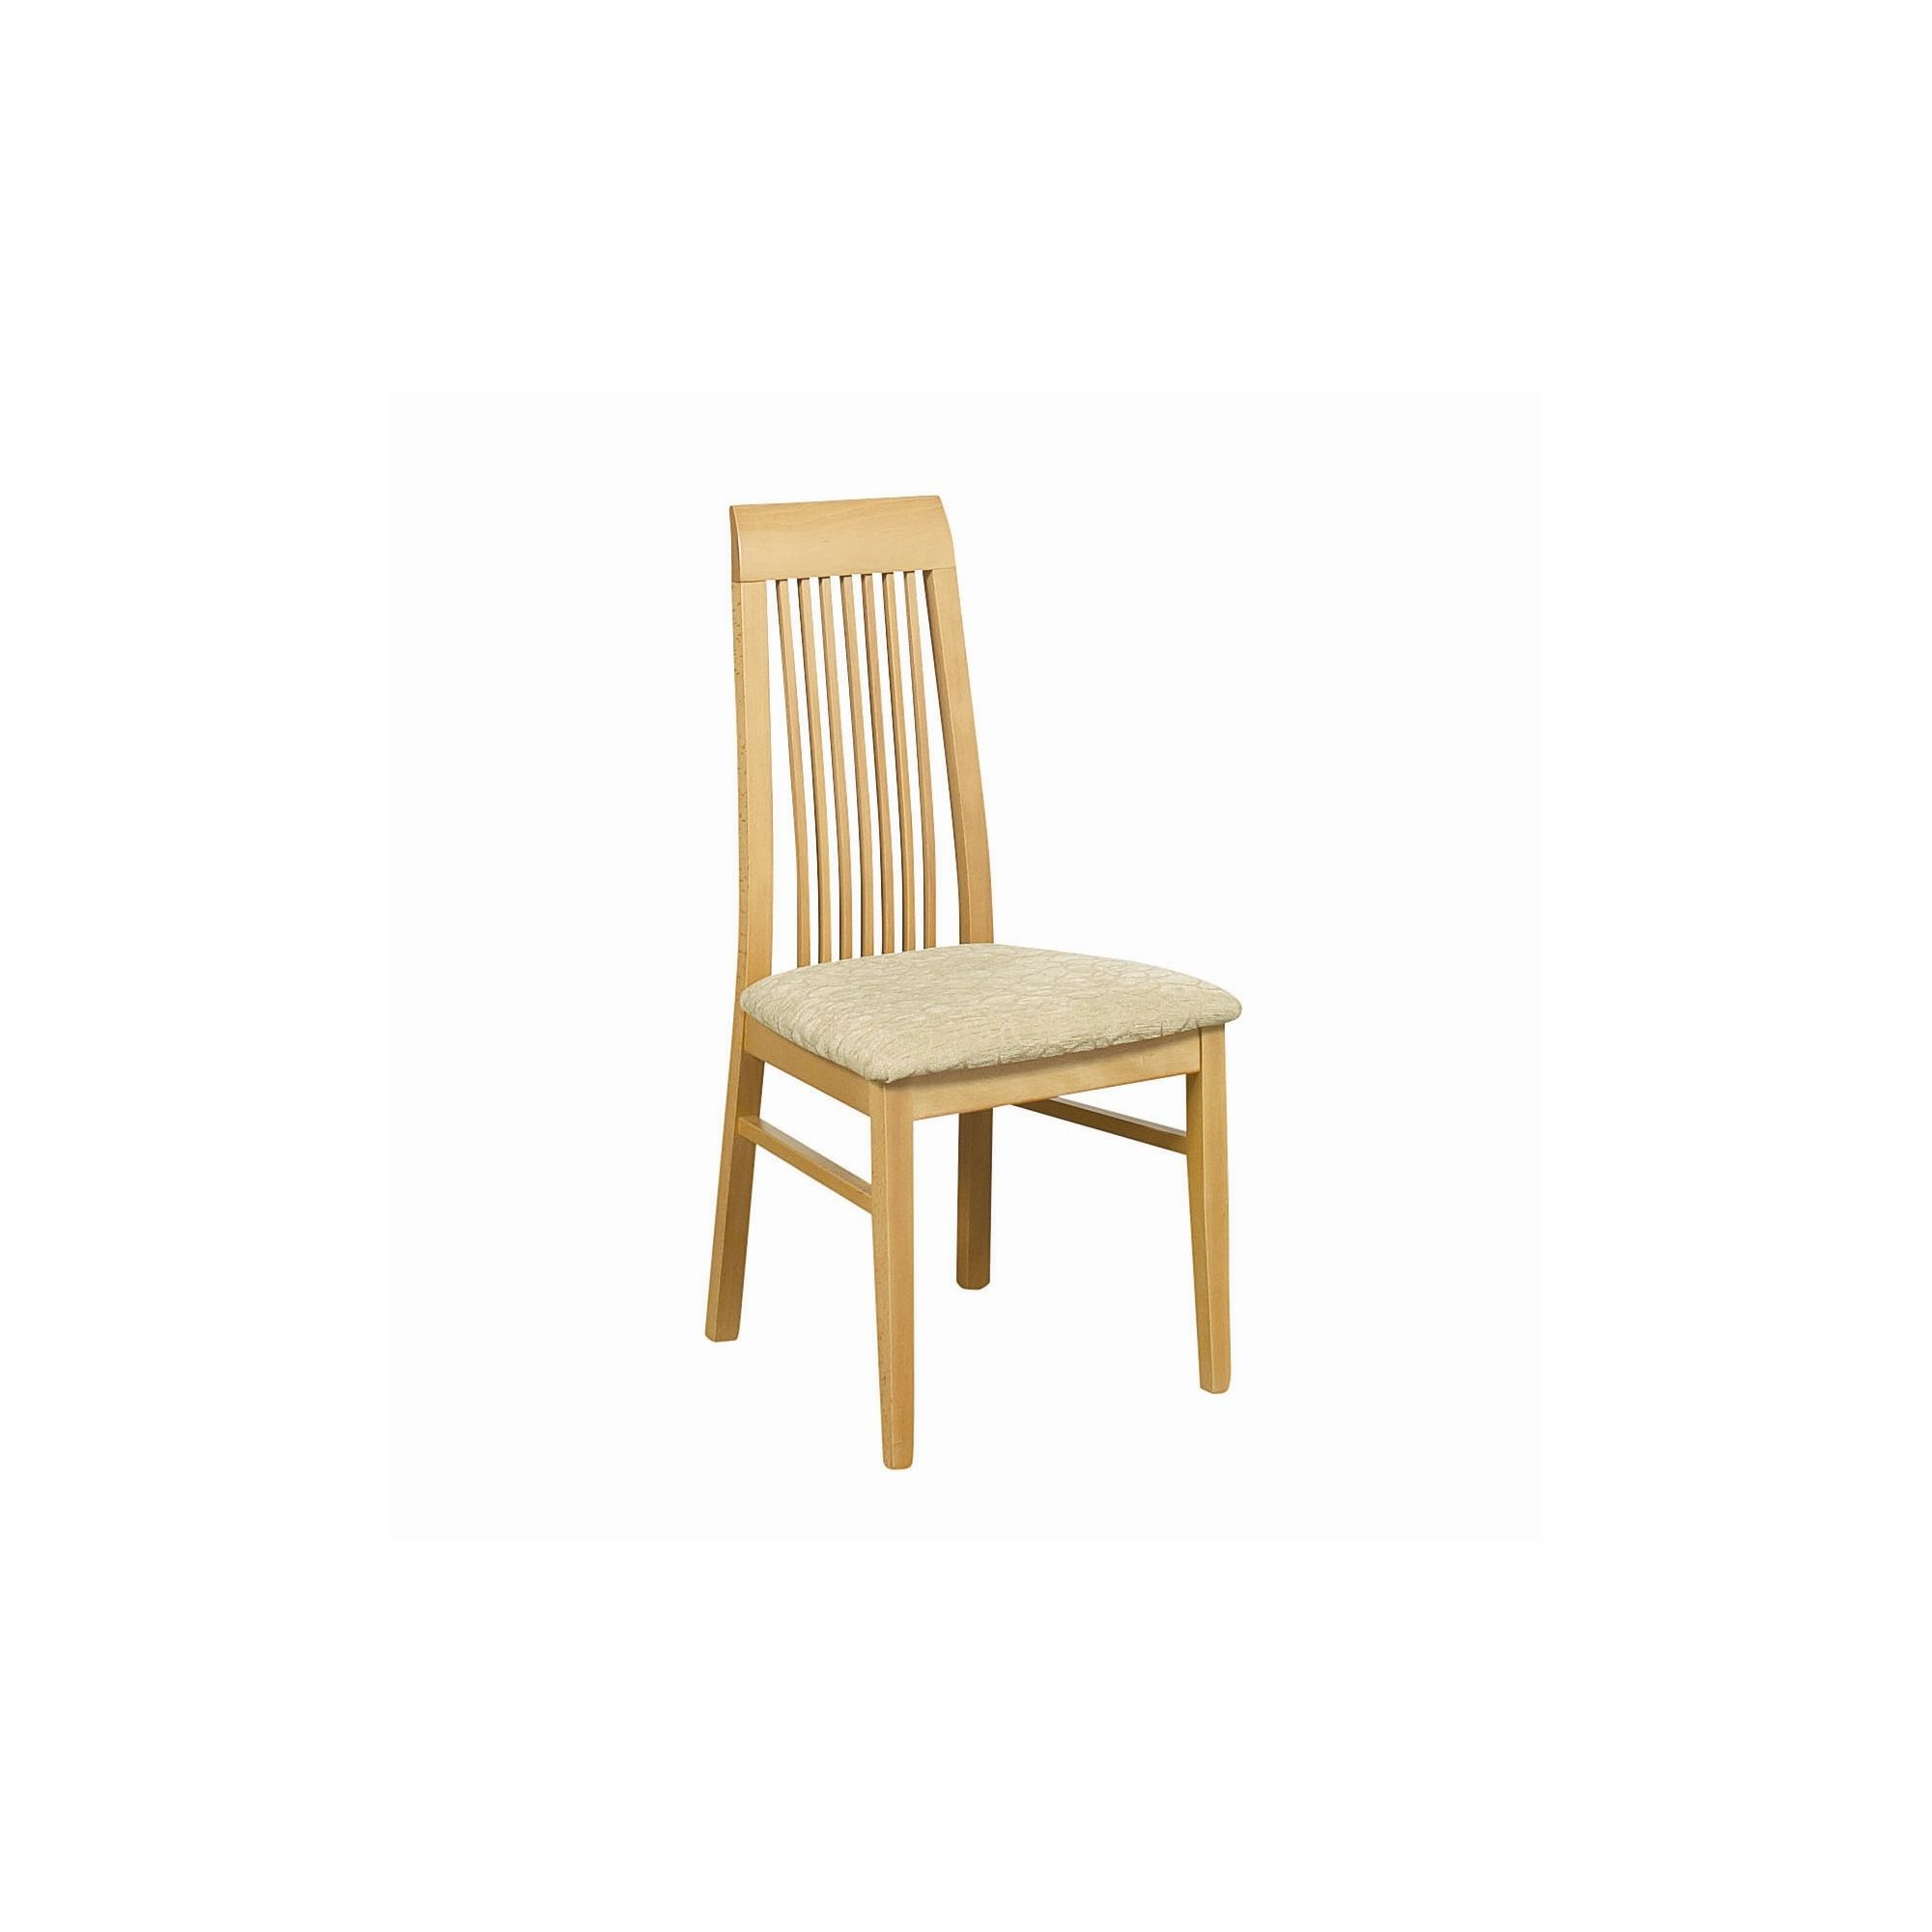 Other Caxton Huxley Slatted Back Dining Chair in Light Oak